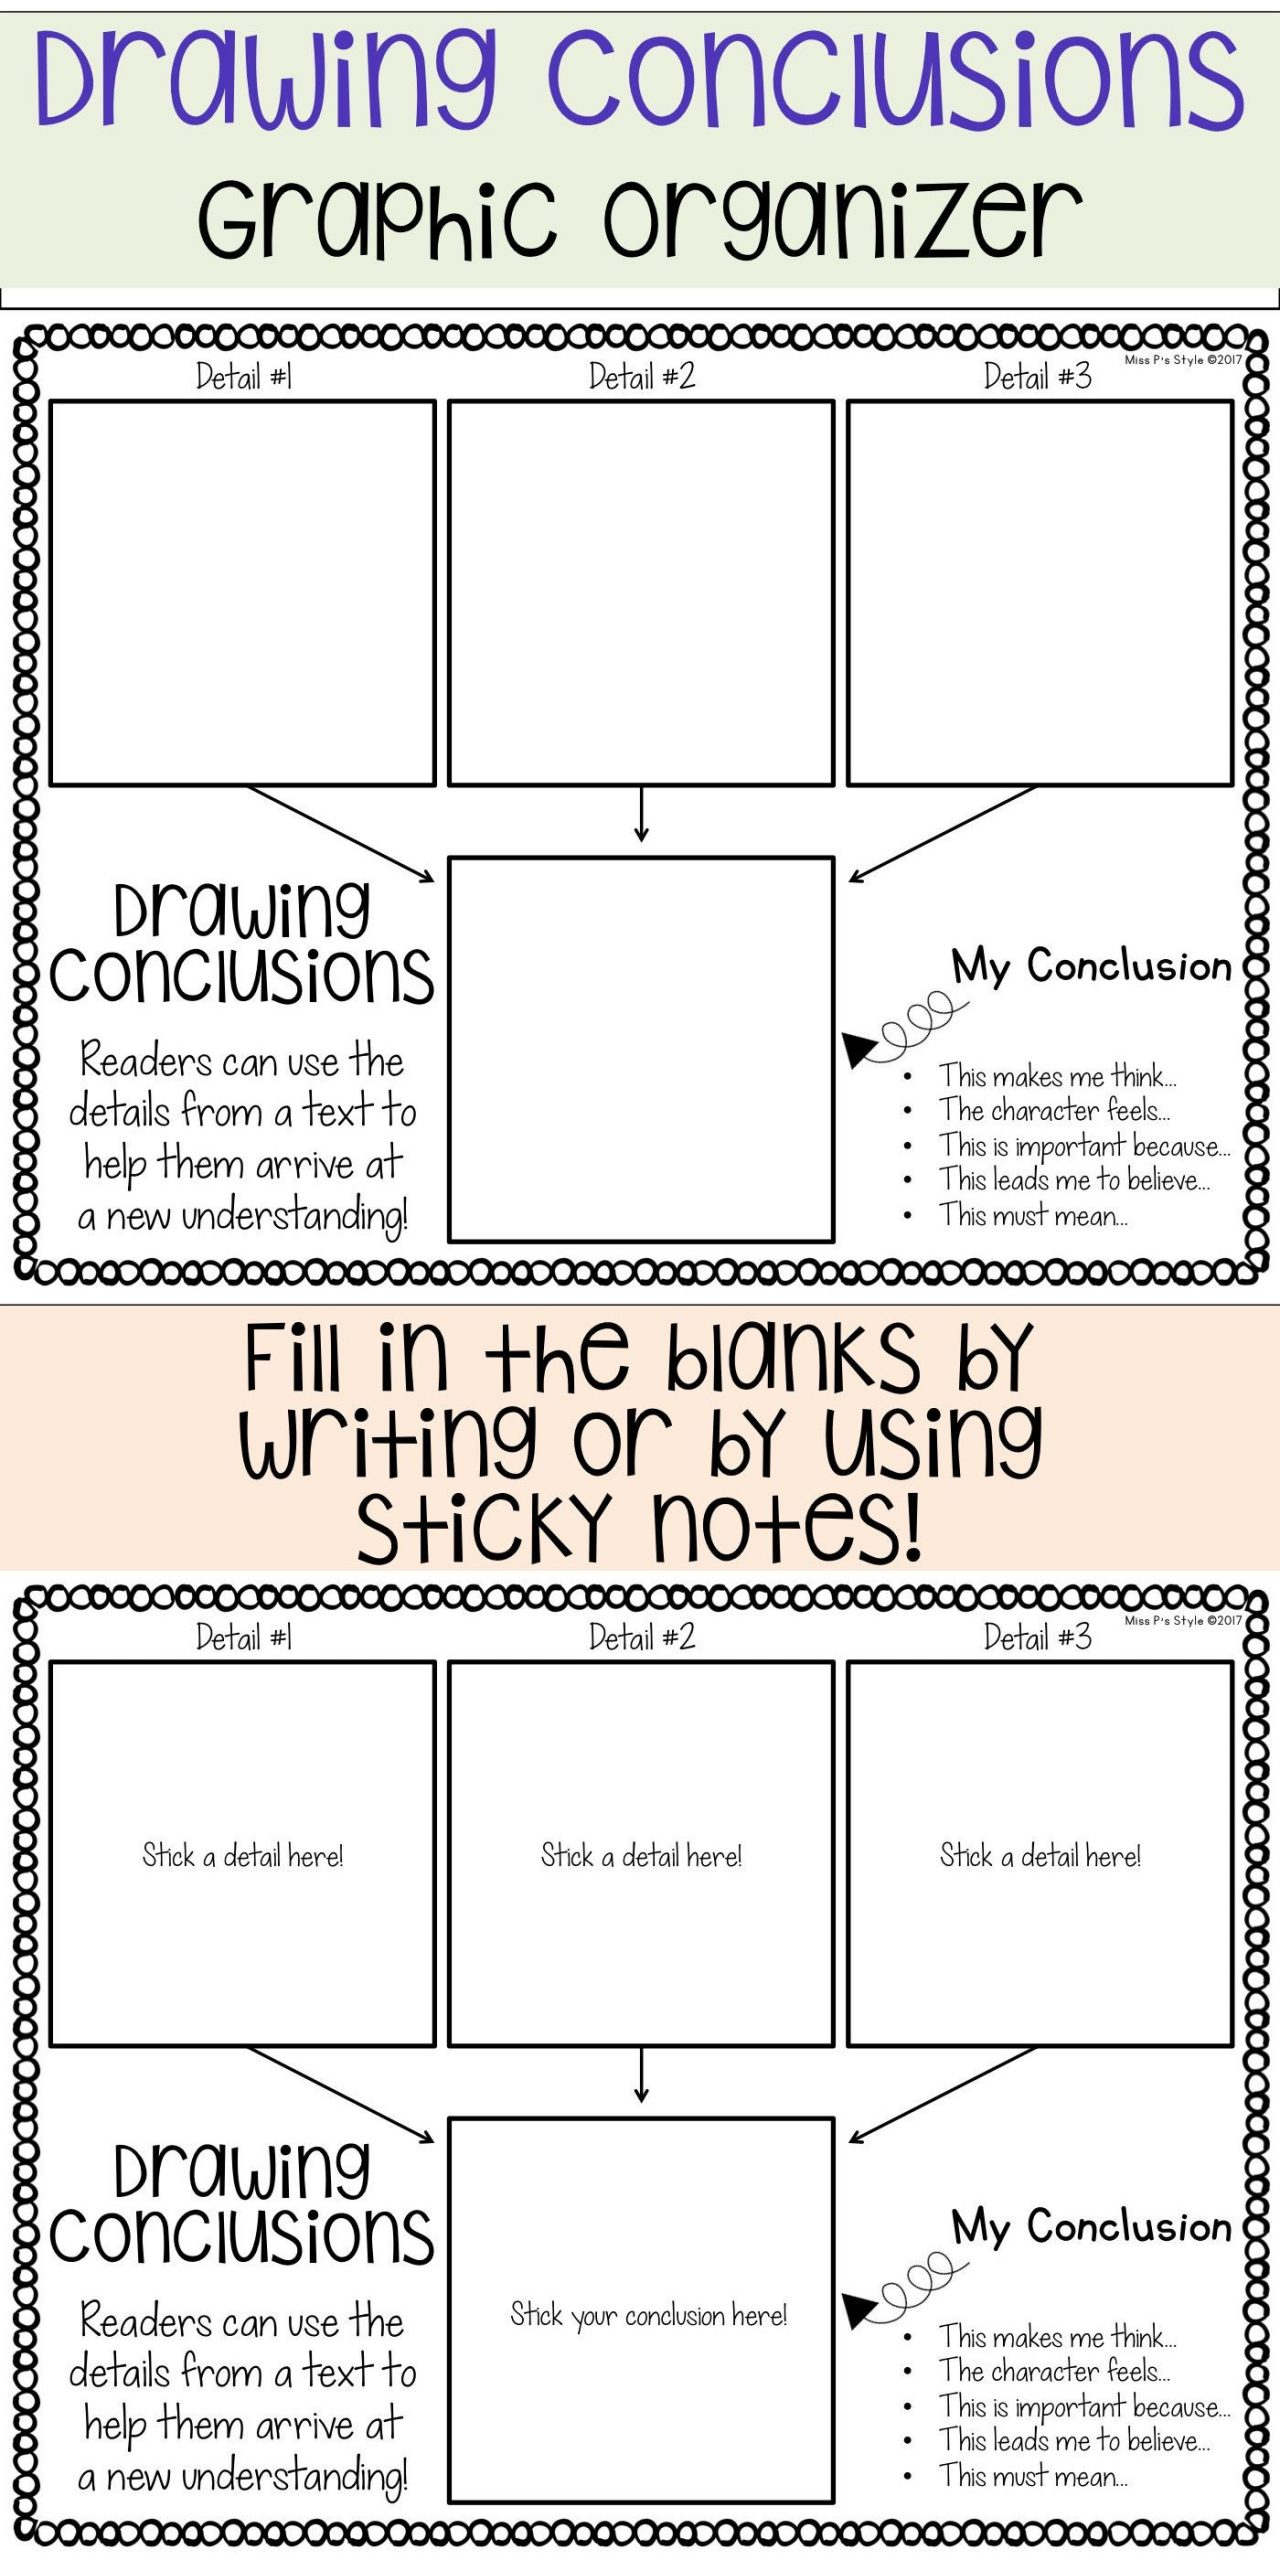 Draw Conclusions Worksheet 3rd Grade Drawing Conclusions Graphic organizer